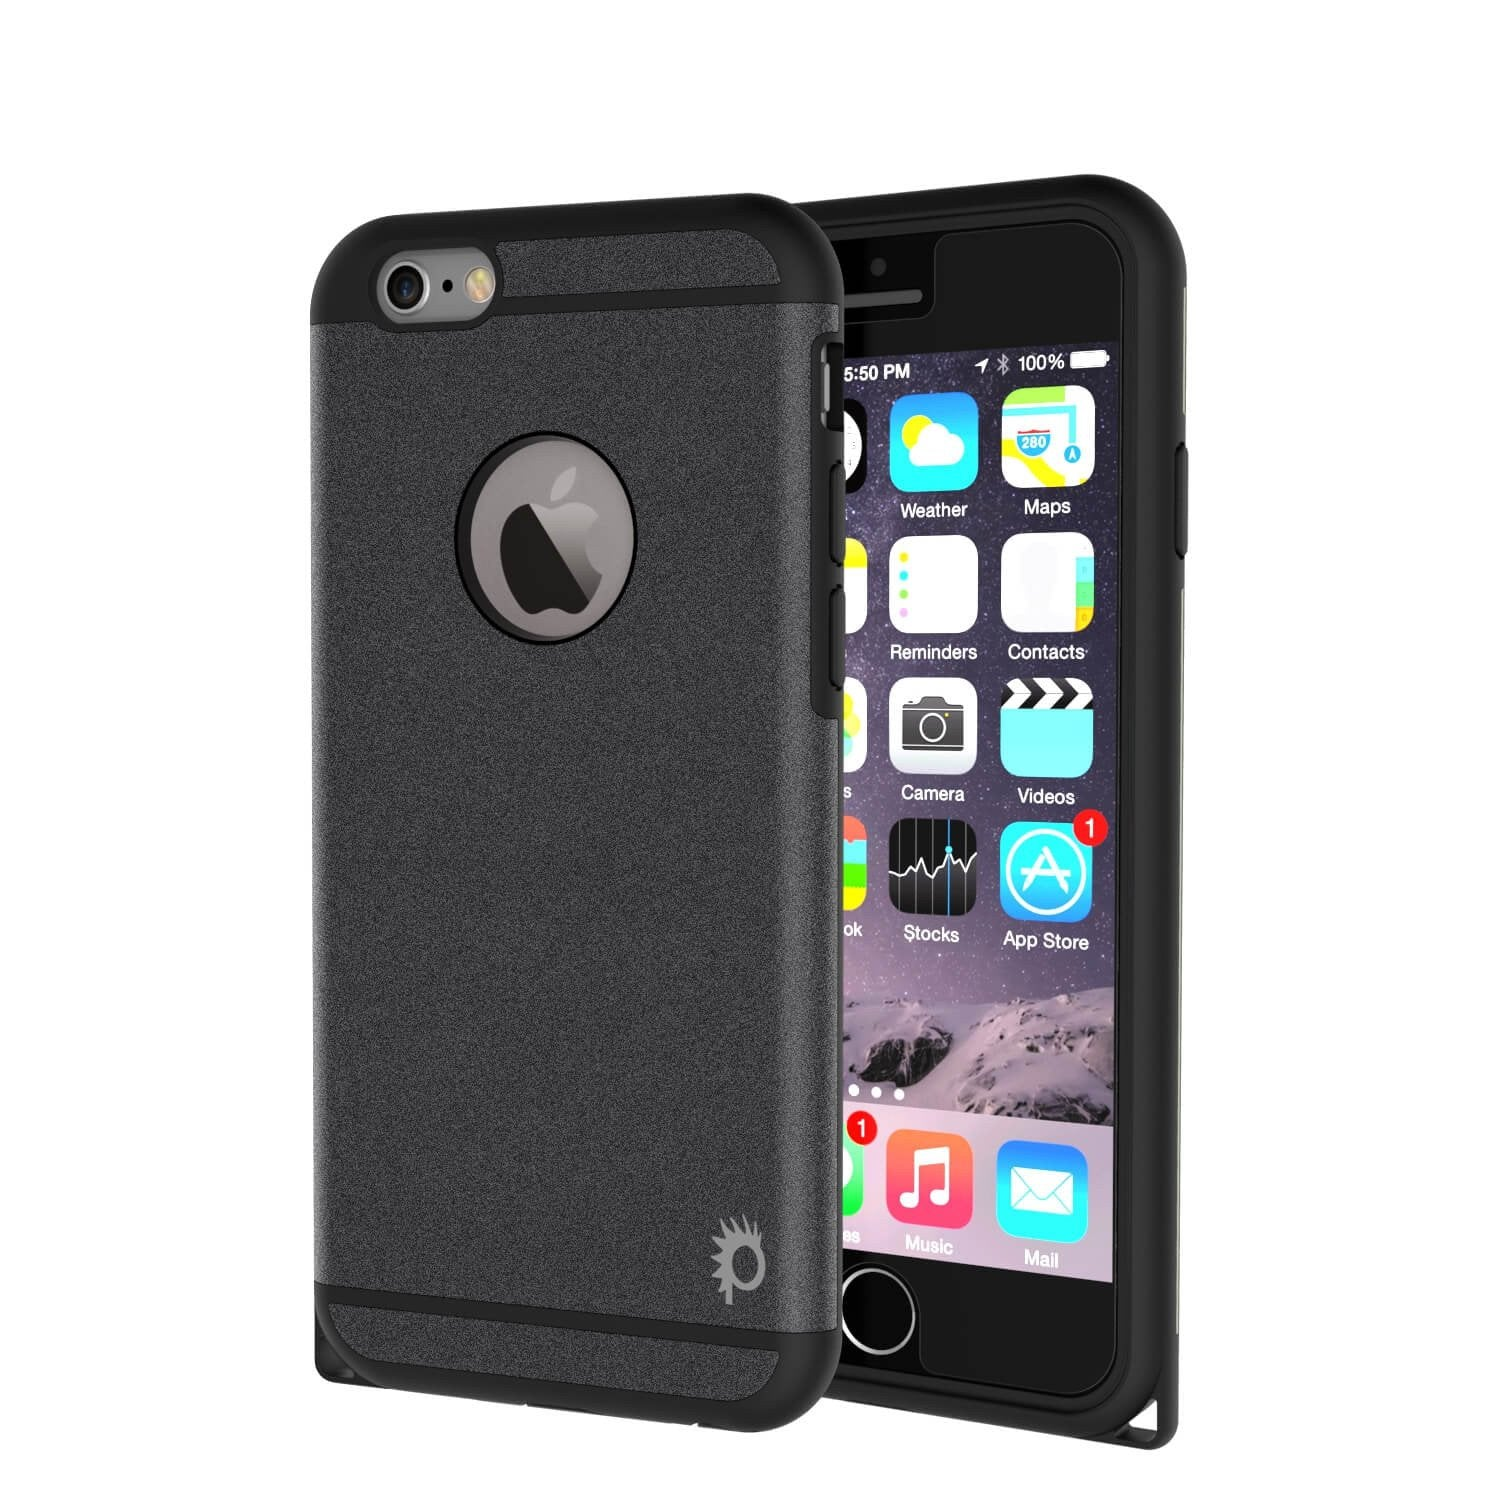 iPhone 6s Plus/6 Plus  Case PunkCase Galactic Black Slim w/ Tempered Glass | Lifetime Warranty - PunkCase NZ